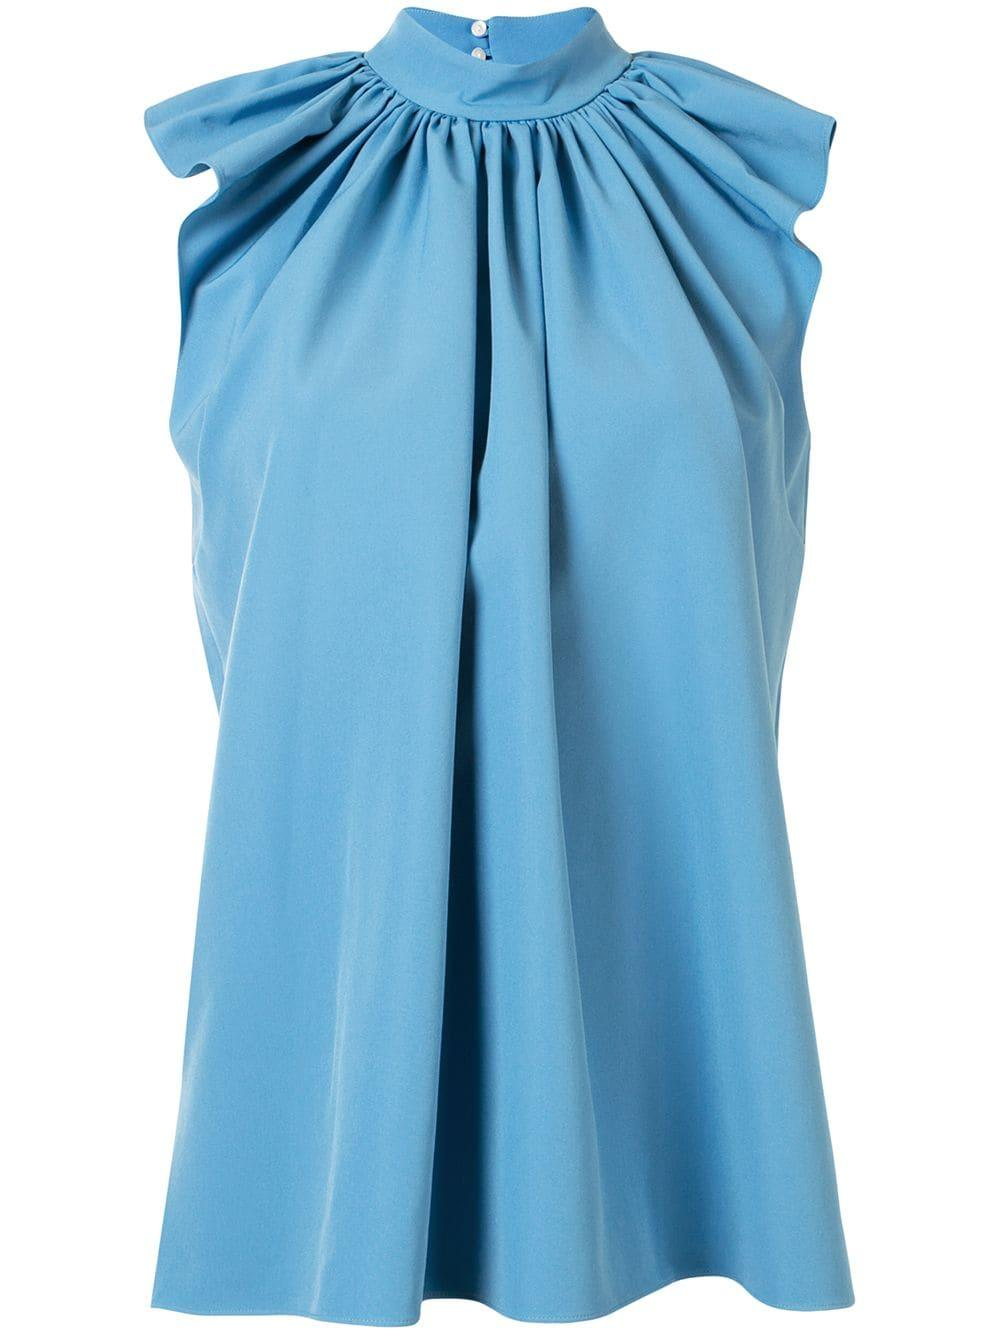 Sleeveless Ruched Shoulder Top